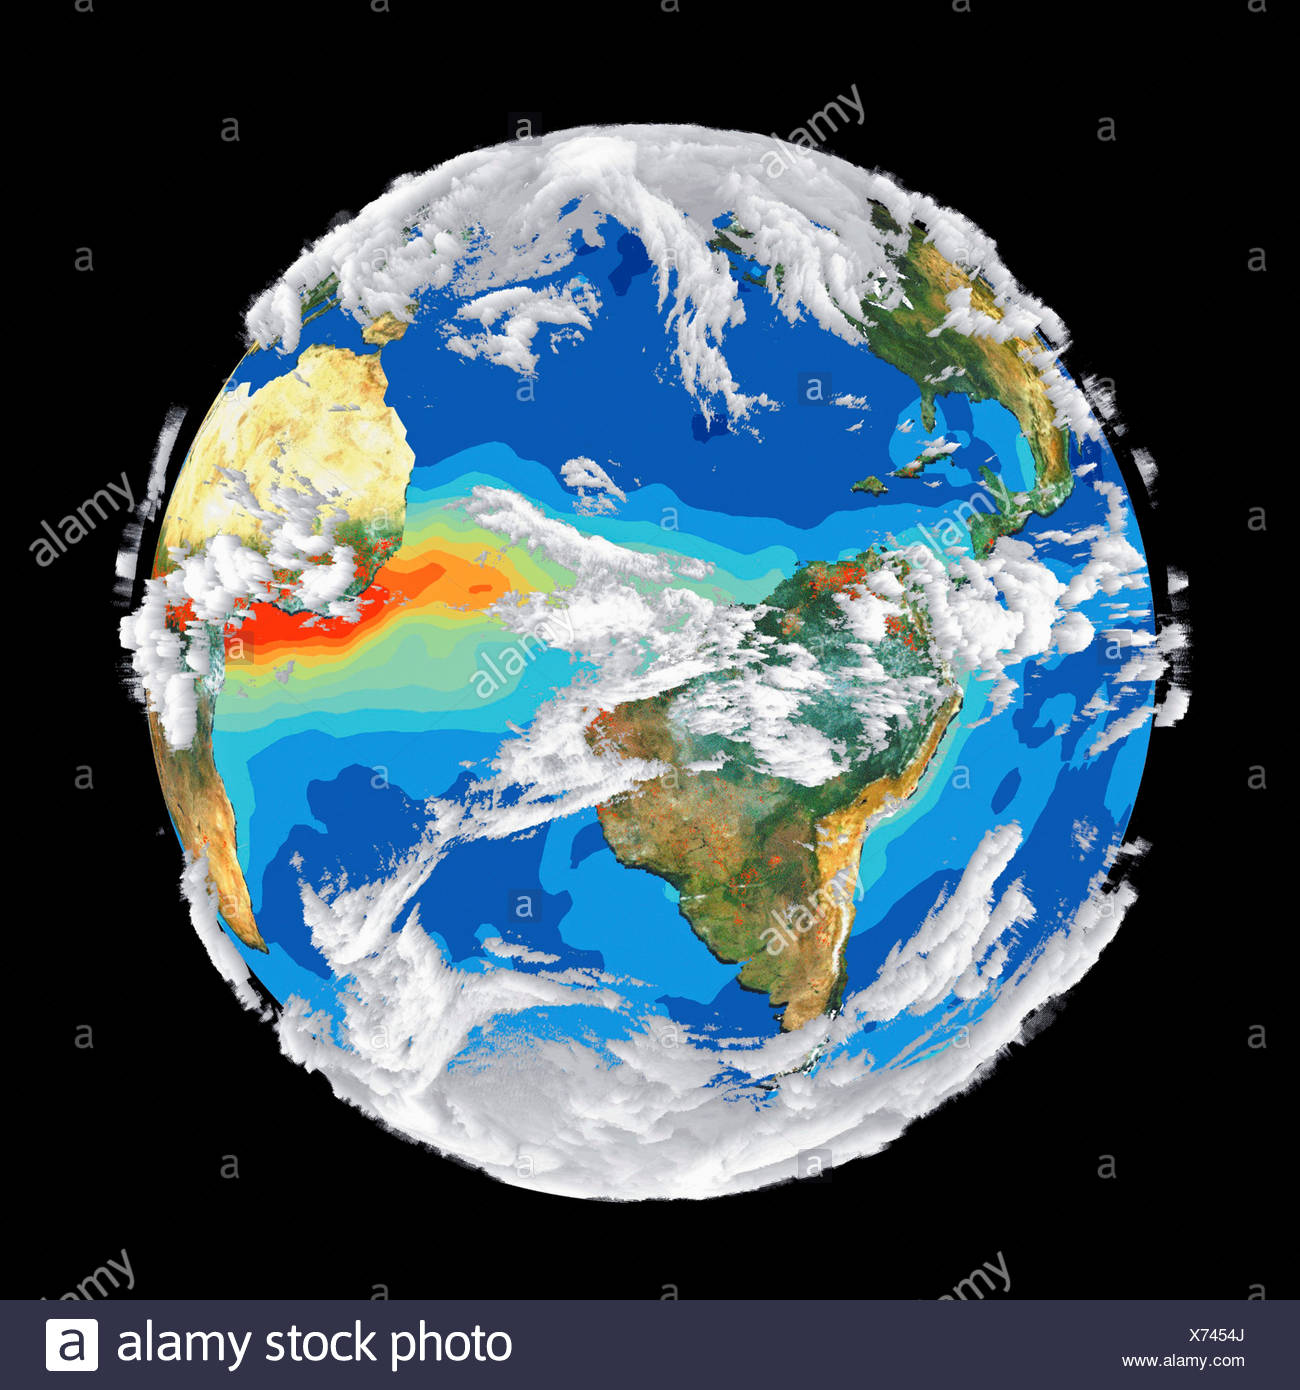 Satellite Image of Earth's Interrelated Systems and Climate - Stock Image